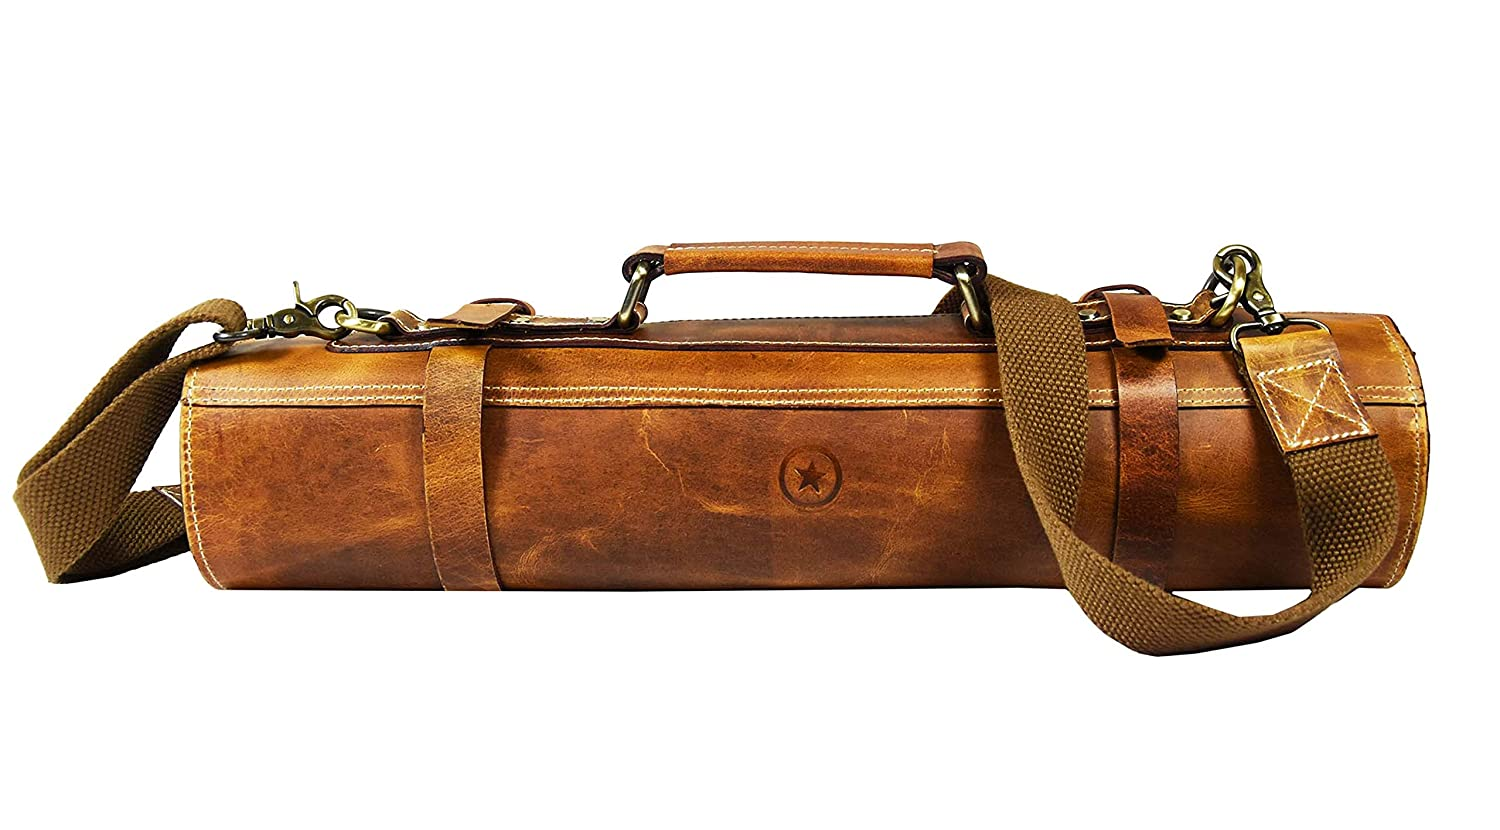 (Caramel Brown) - Leather Roll Knife Storage Bag Elastic and Expandable 10 Pockets Adjustable/Detachable Shoulder Strap Travel-Friendly Chef Knife Case Roll By Aaron Leather (Caramel Brown)   B07BJ9S6ZK